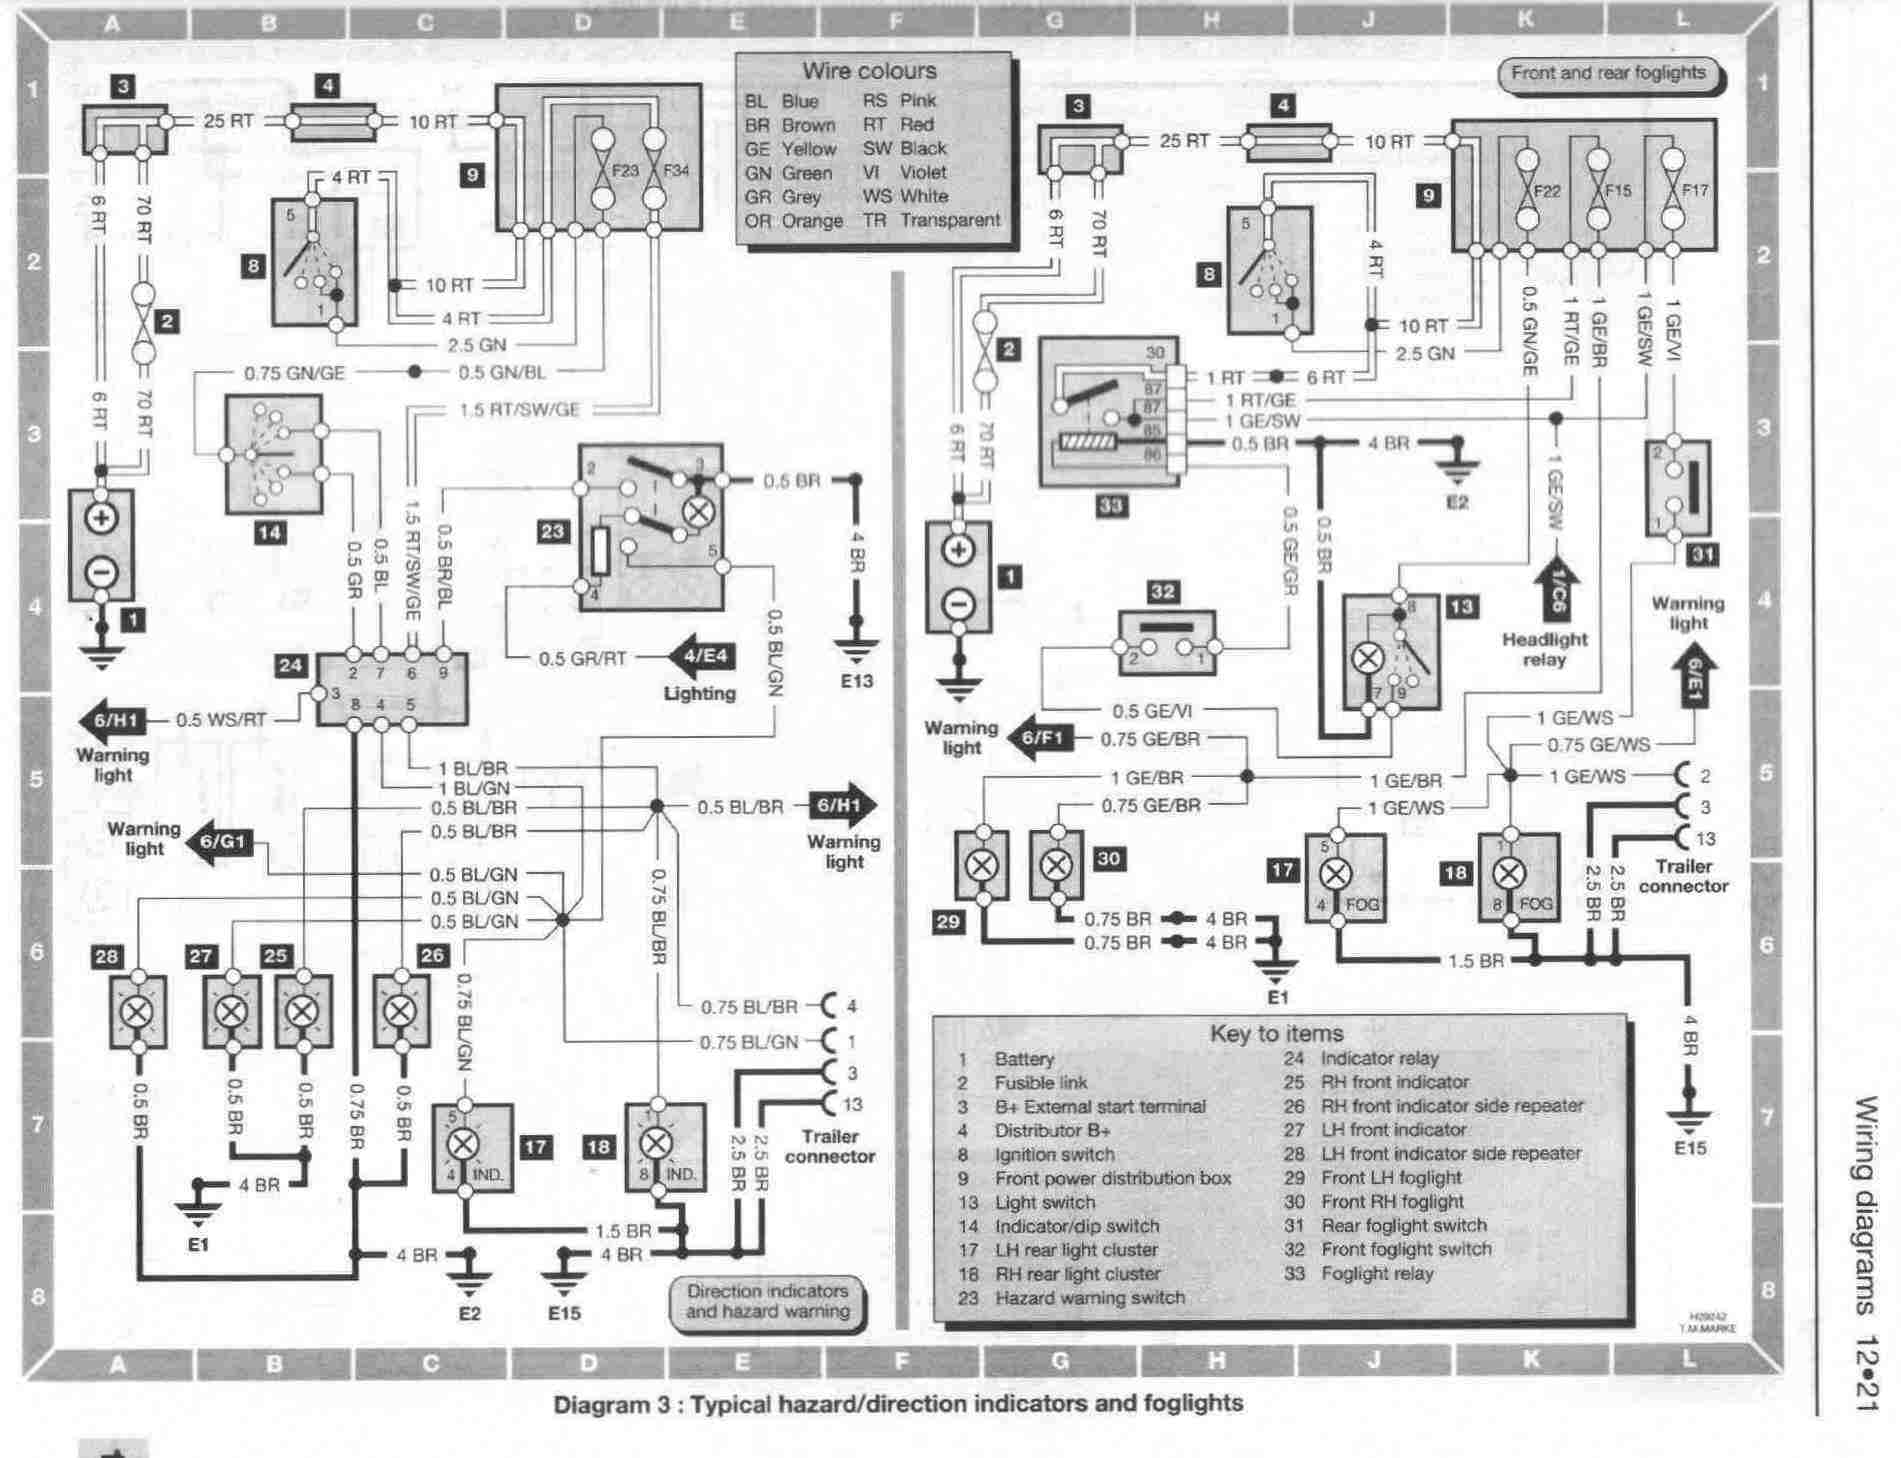 wiring diagram also bmw e46 fuse box location in  wiring  free engine image for user manual download